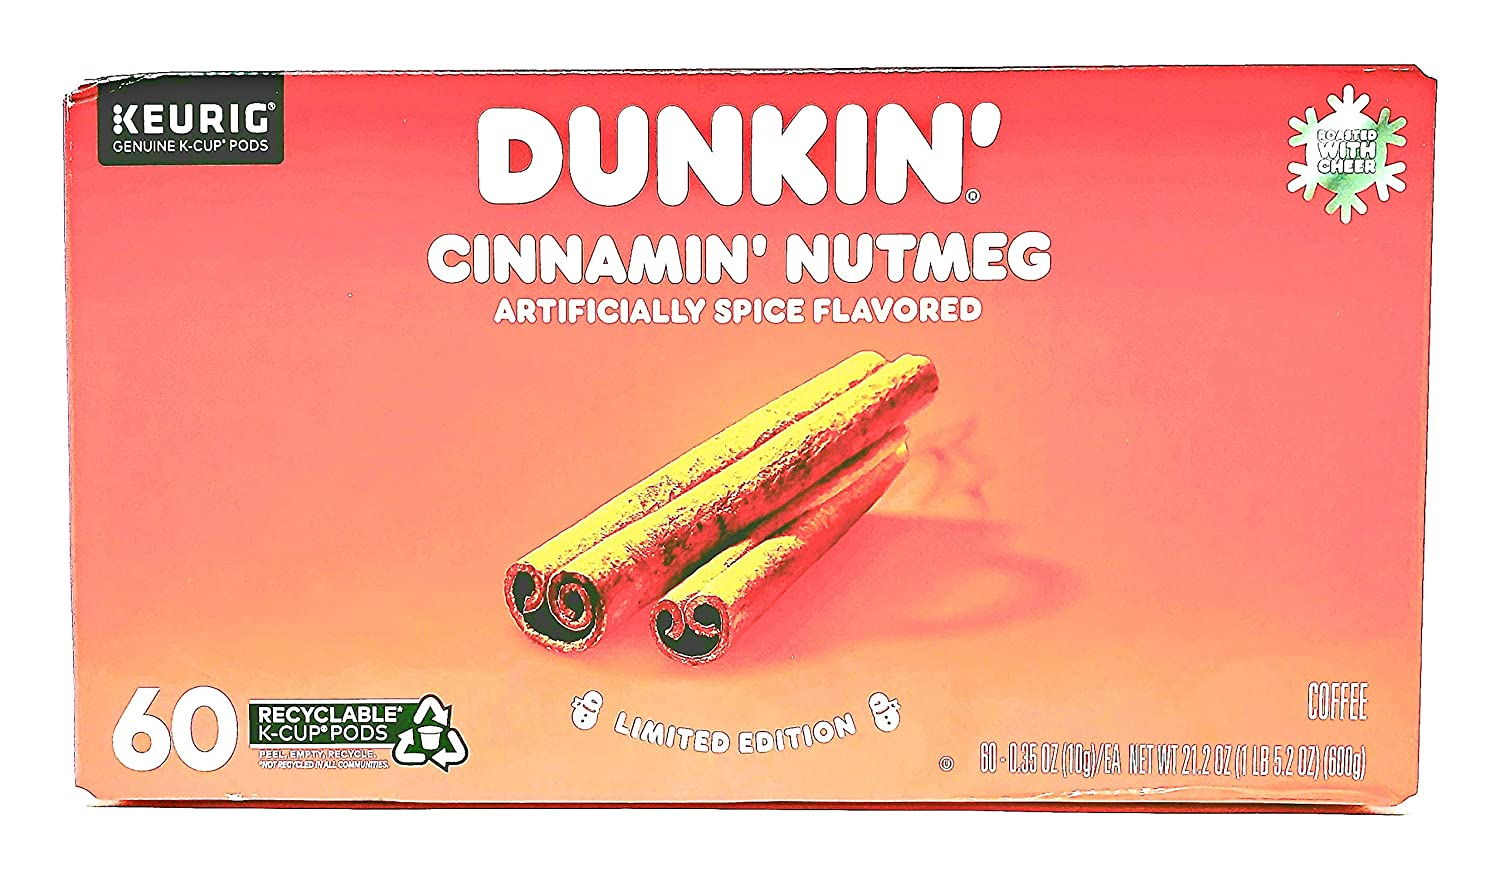 Dunkin Donuts Cinnamin' Nutmeg K Cup Coffee Pods - Limited Edition - 60 Count of Single Serve KCups - Spice Blend of Cinnamon, Nutmeg and Sweet Brown Sugar Flavored Coffee - Recyclable K Cup Pods